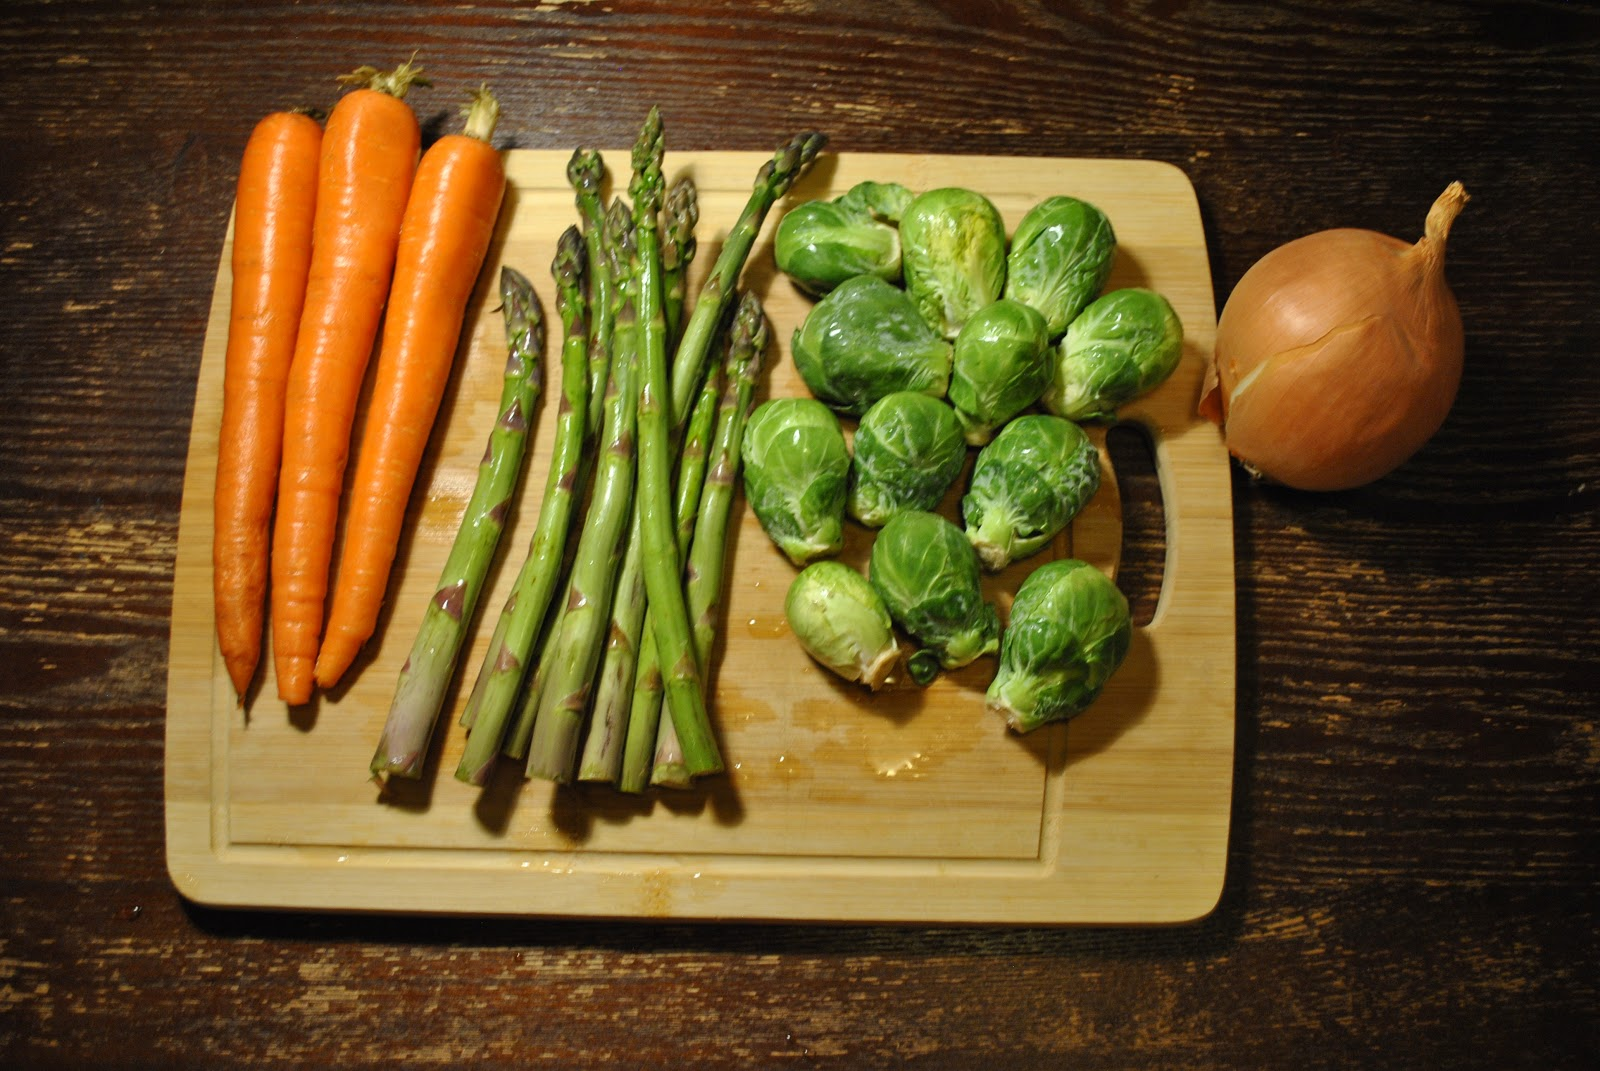 Carrots, asparagus, brussel sprouts, and a yellow onion